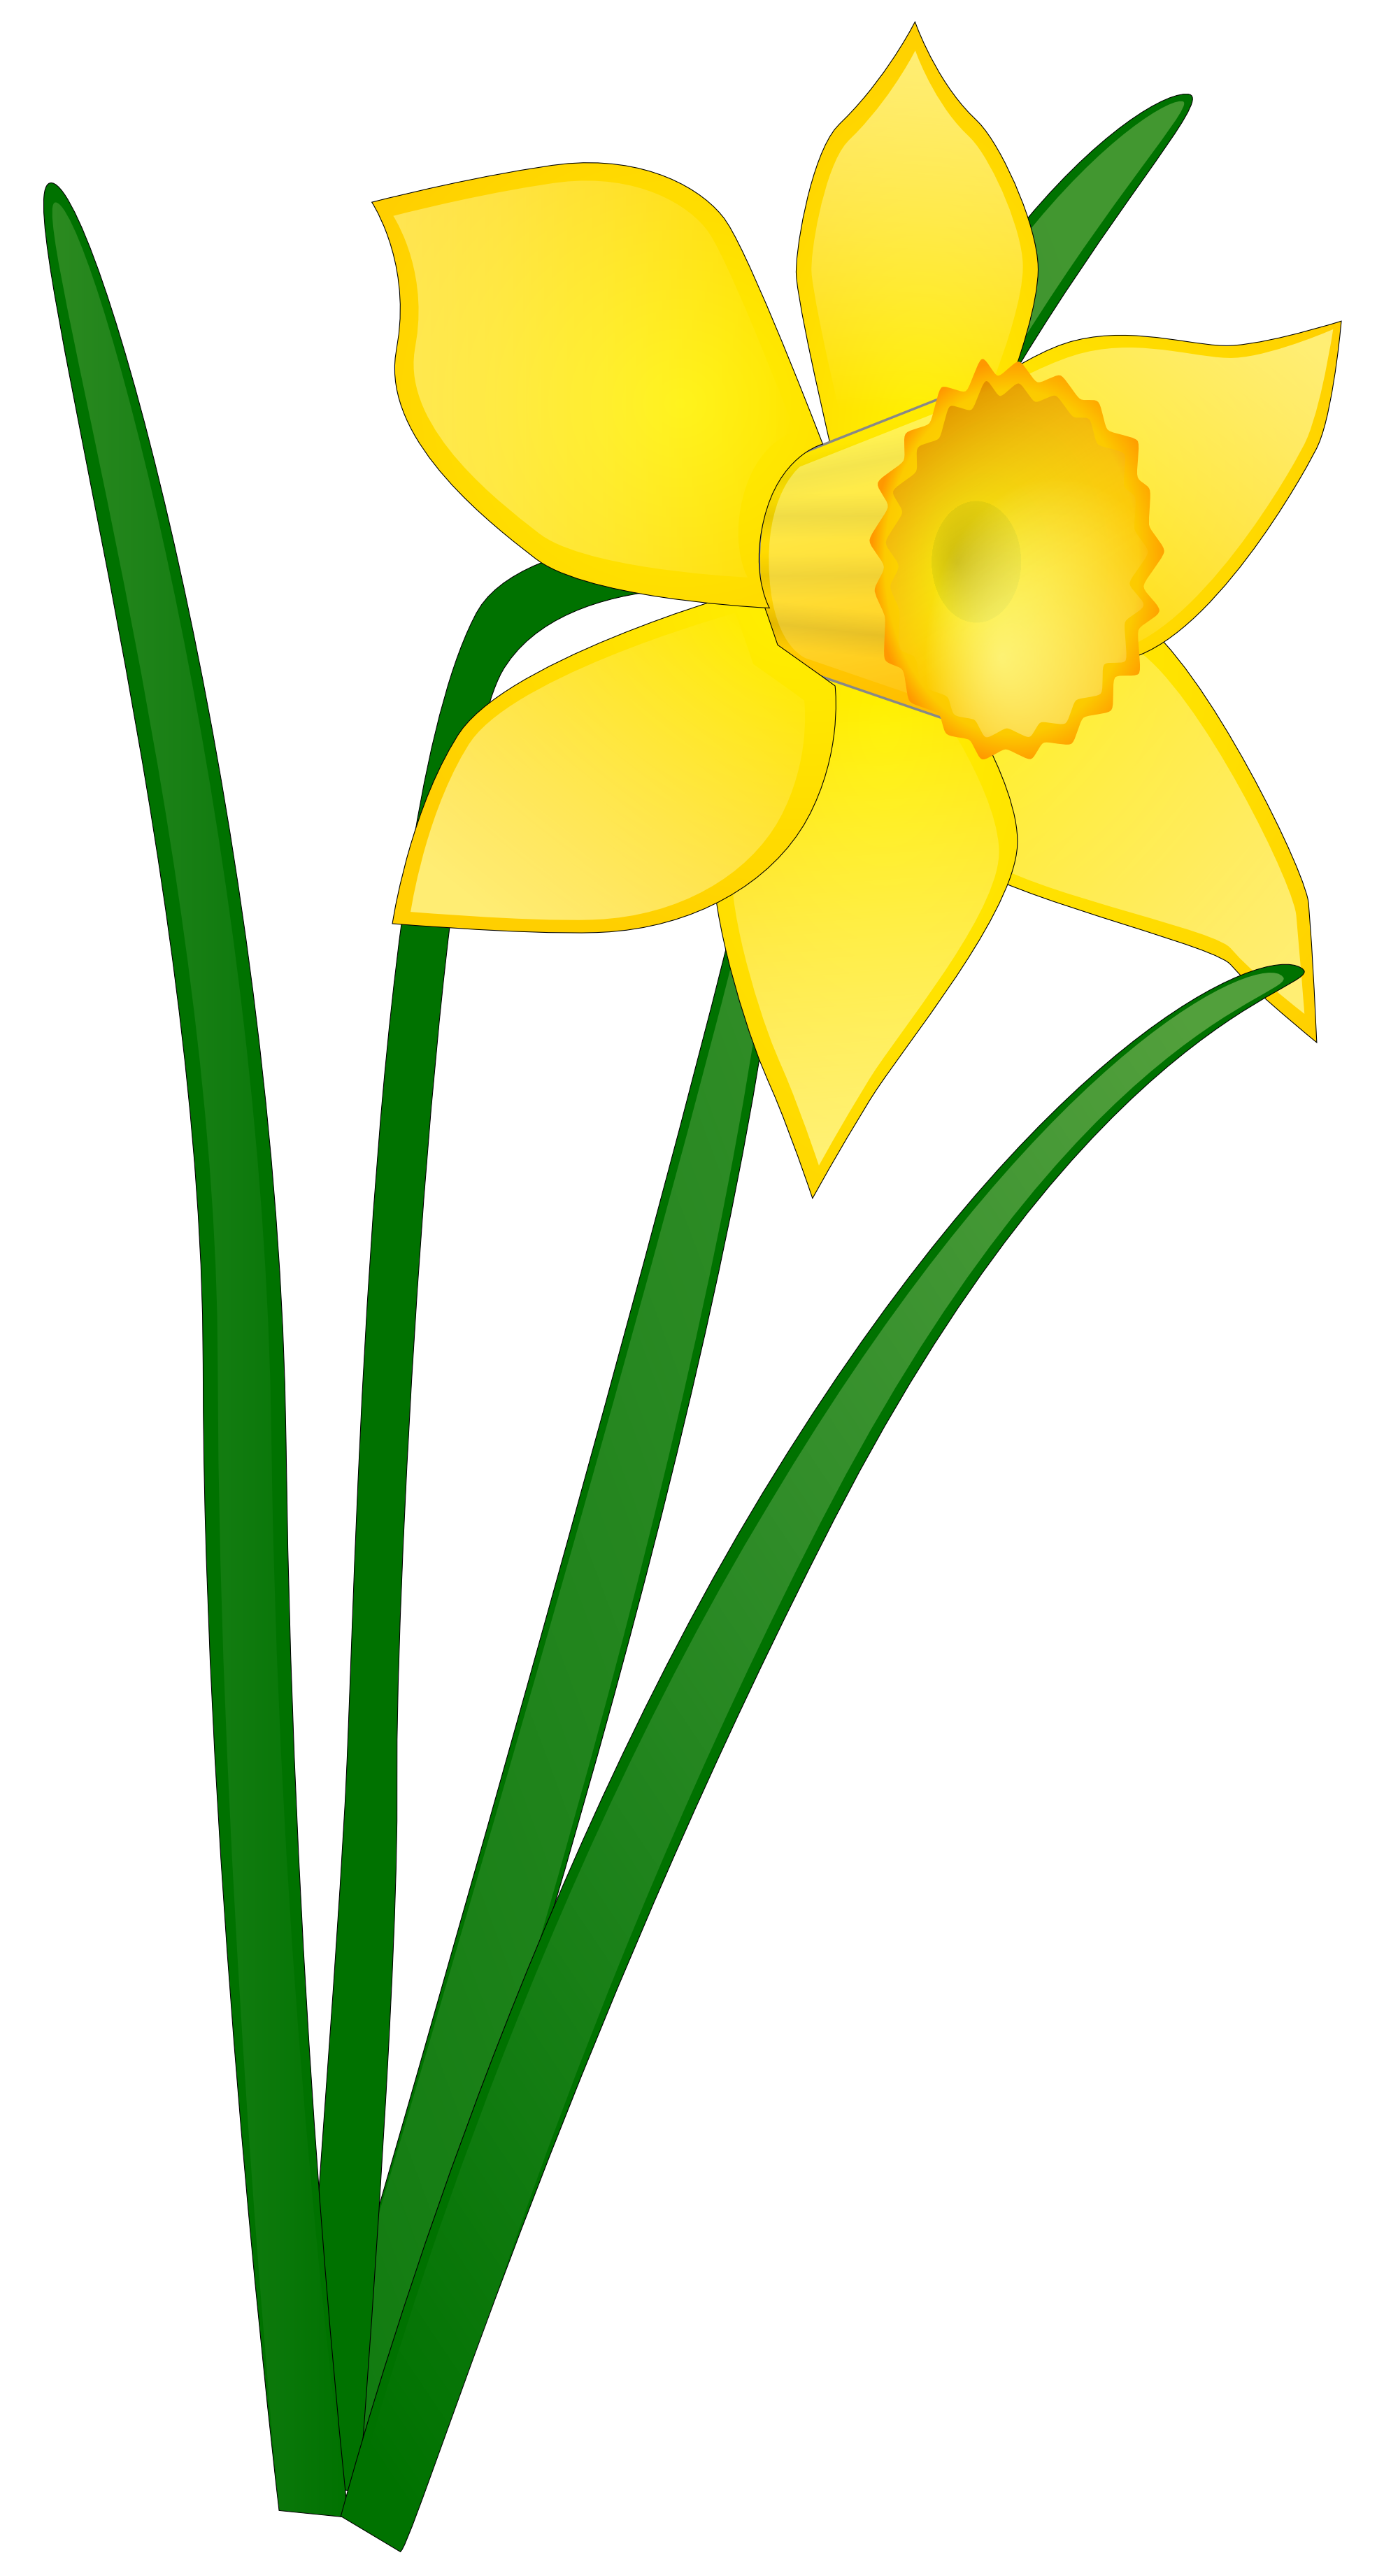 flowers without background.